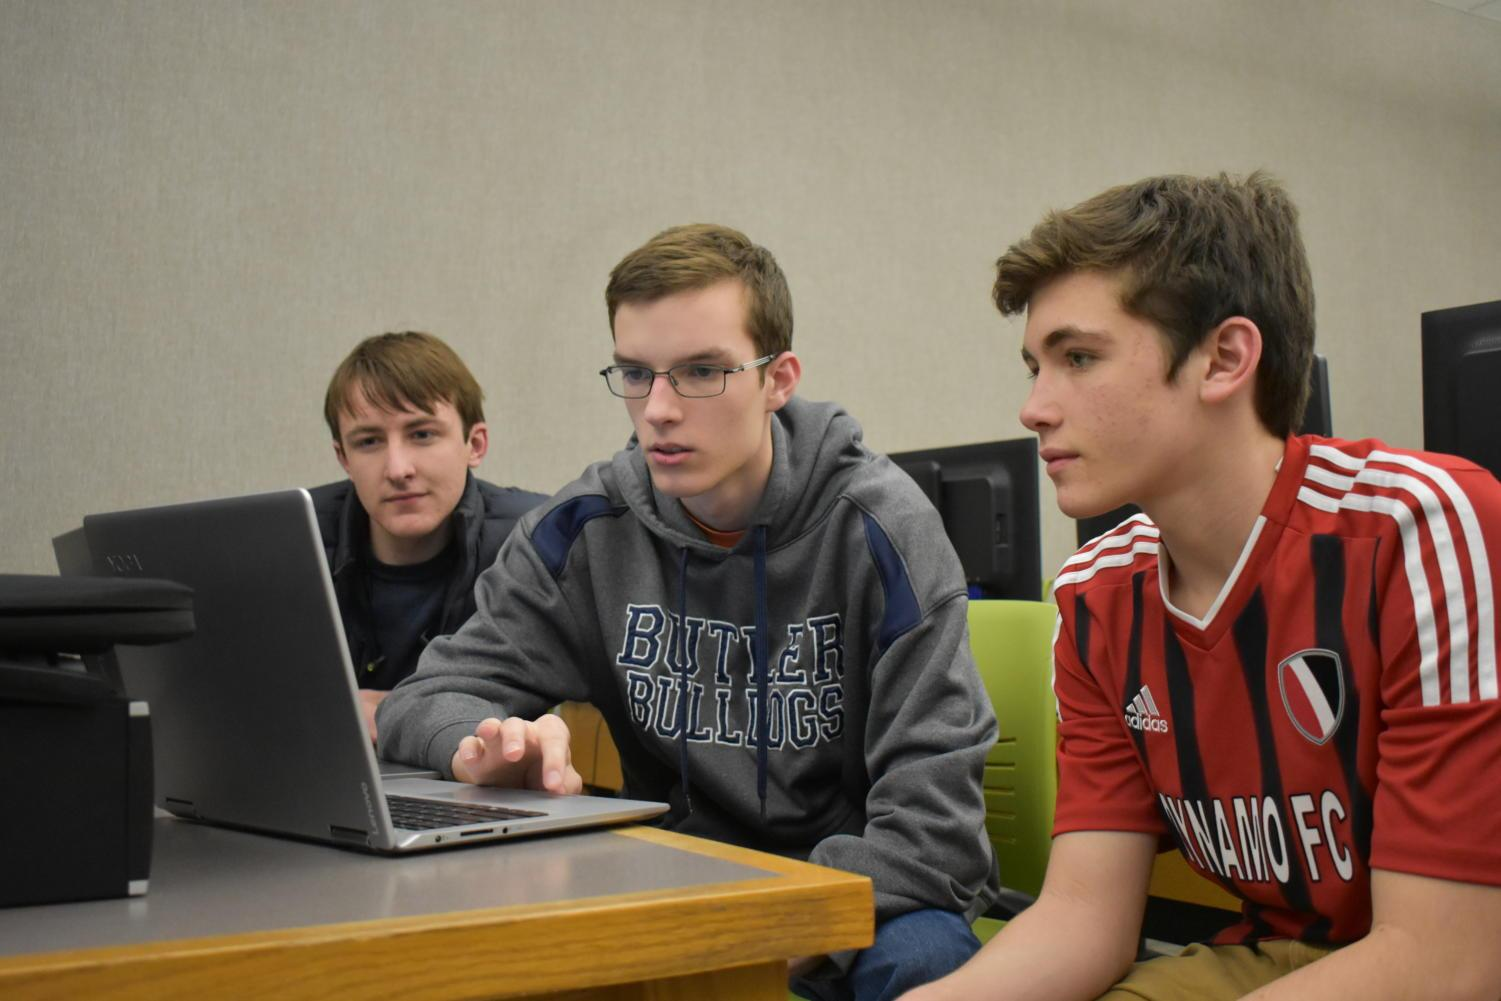 Jared Stigter (center),  Code For Change Technology Lead and junior, helps Xavier Miller (left) and Sam Fang (right), club members and juniors, design a pricing page for the website.